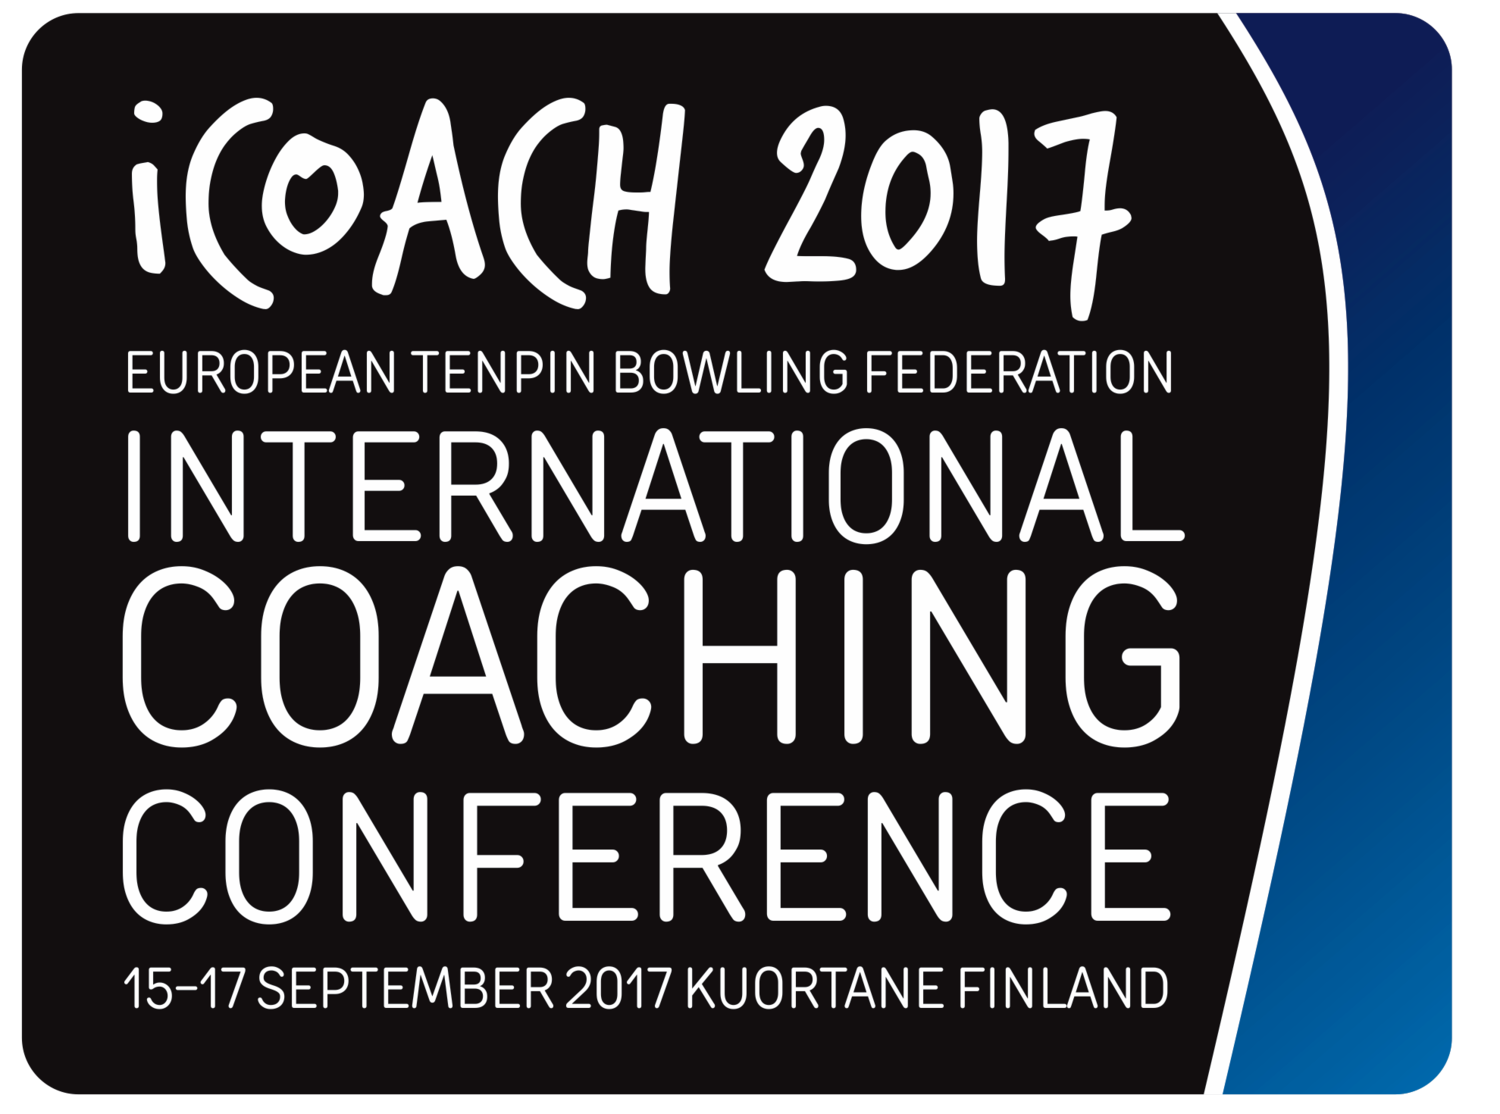 iCOACH - ETBF INTERNATIONAL BOWLING CONFERENCE